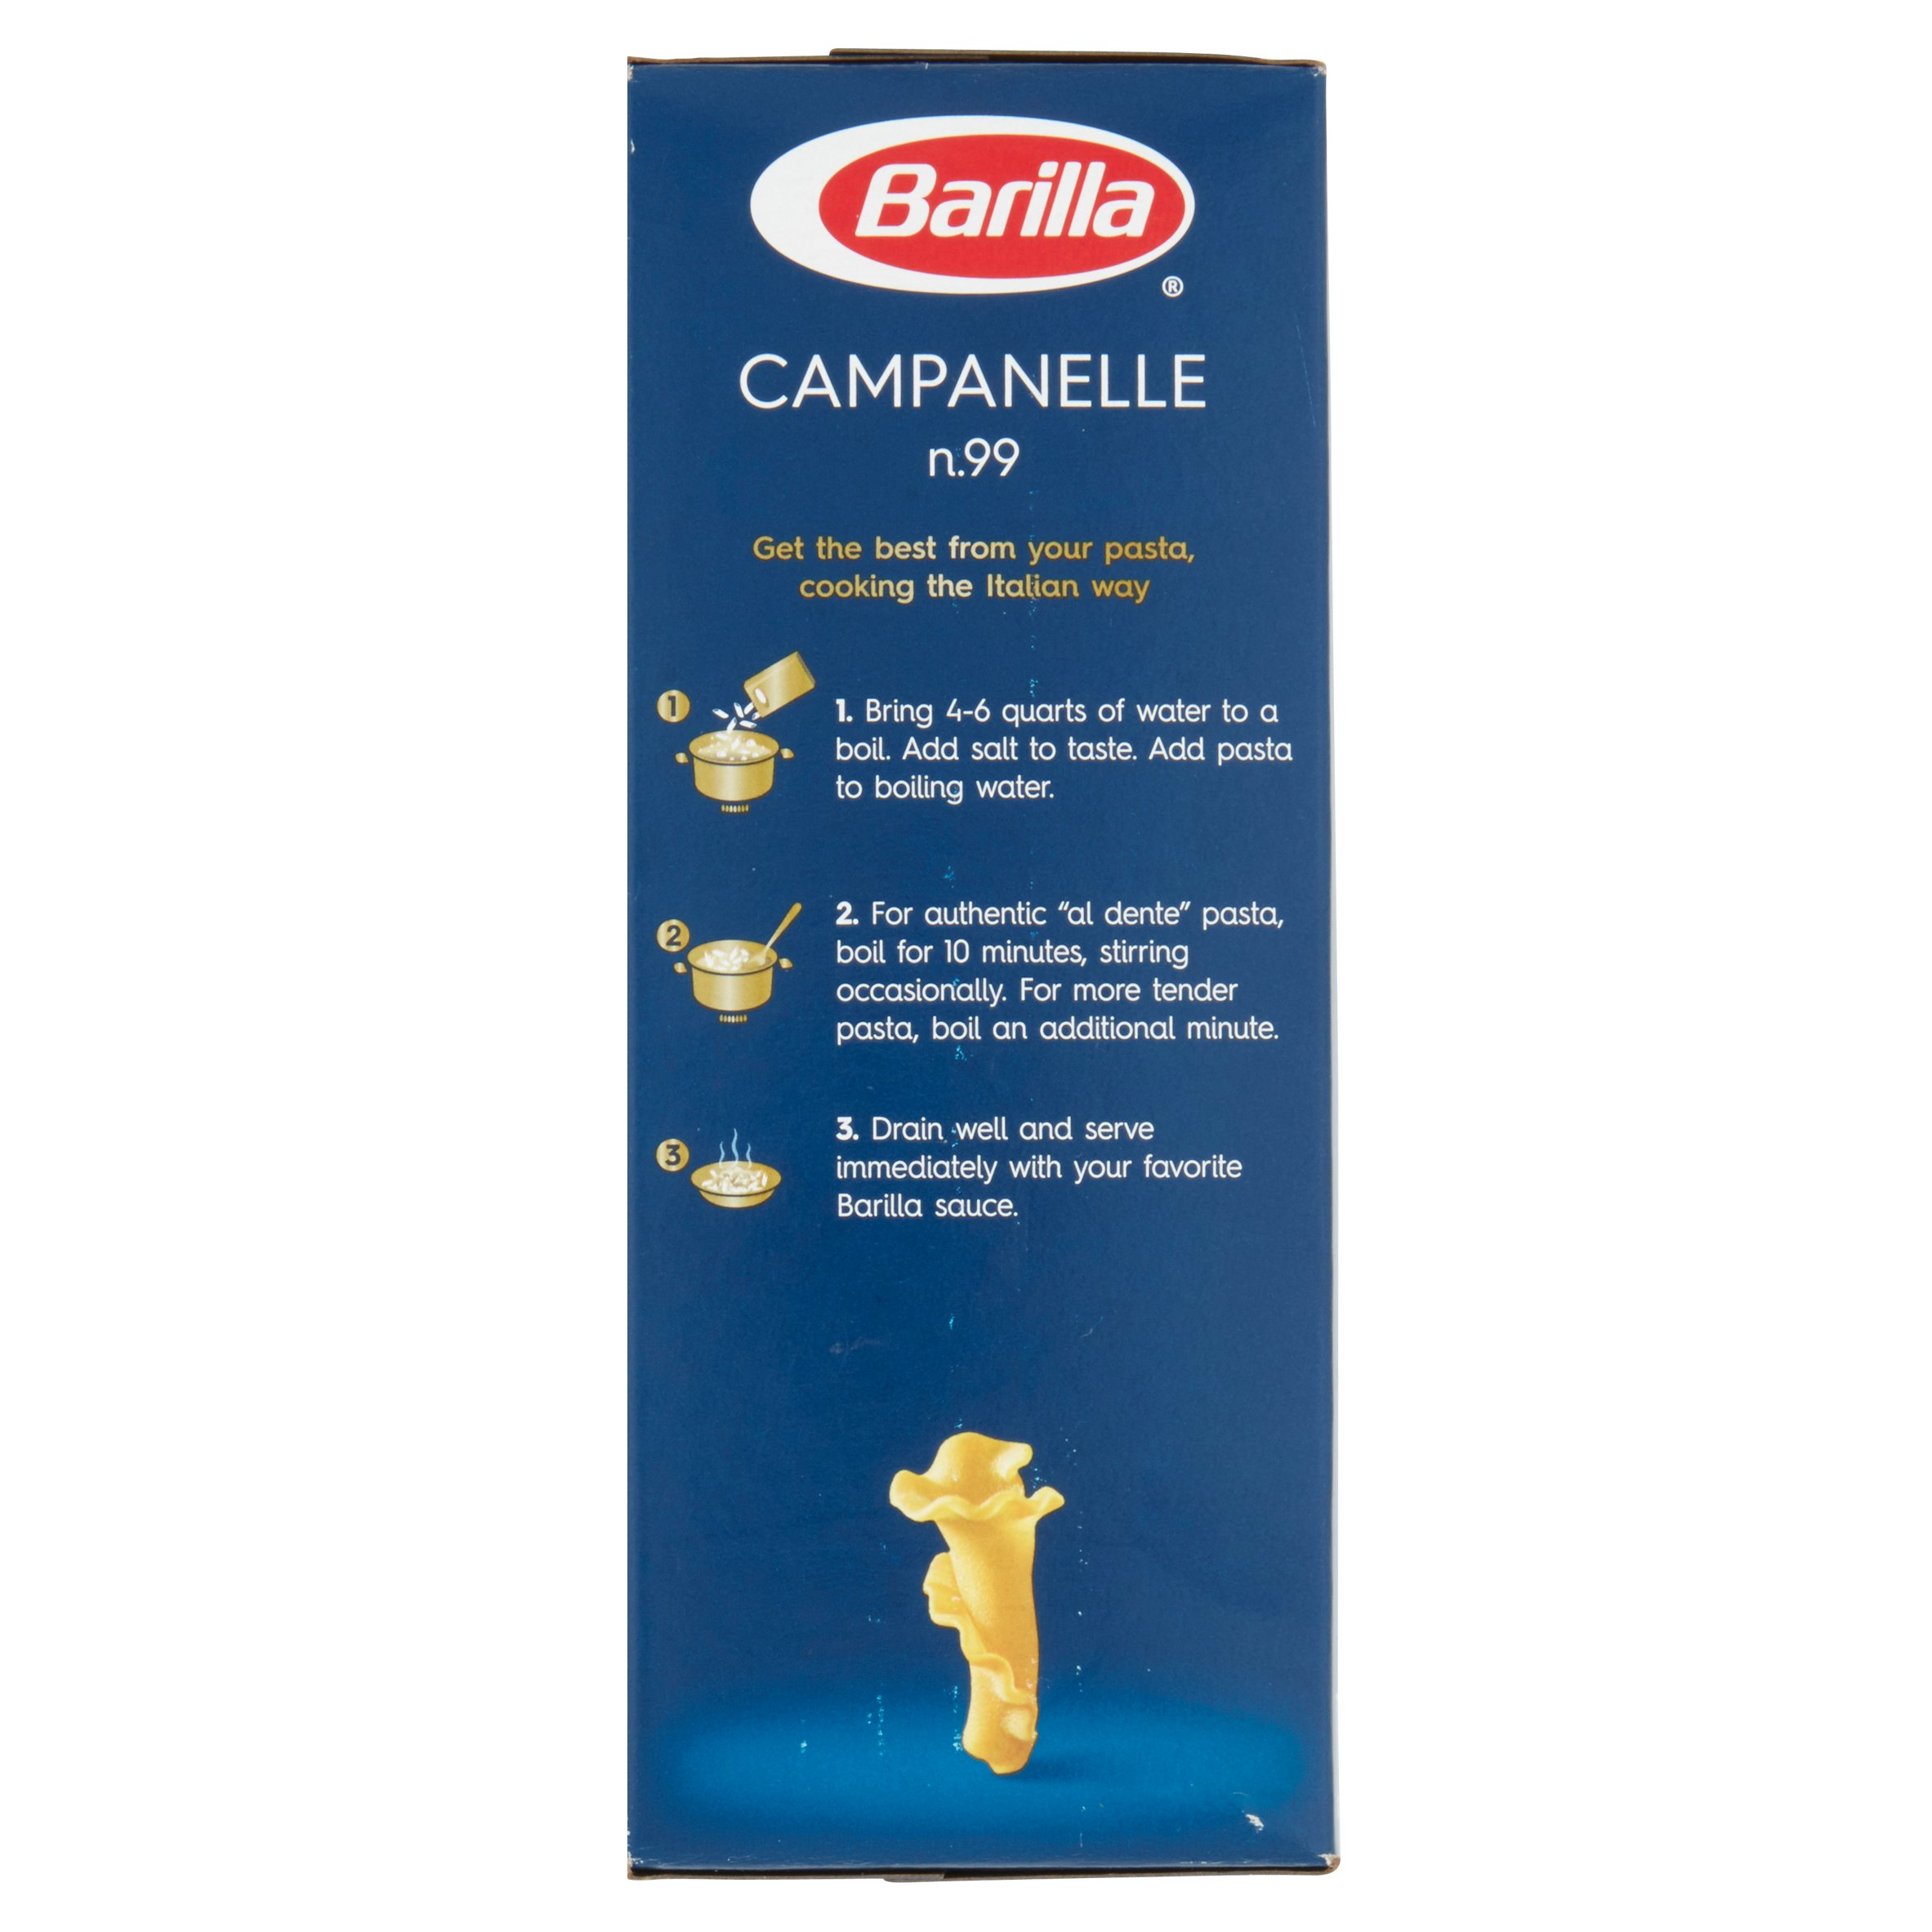 barilla case study report Barilla sp(a) case solution,barilla sp(a) case analysis, barilla sp(a) case study solution, barilla spa (a) 1 diagnose the underlying causes of the difficulties that the jitd program was created to solve what are the benefits and drawbacks of th.